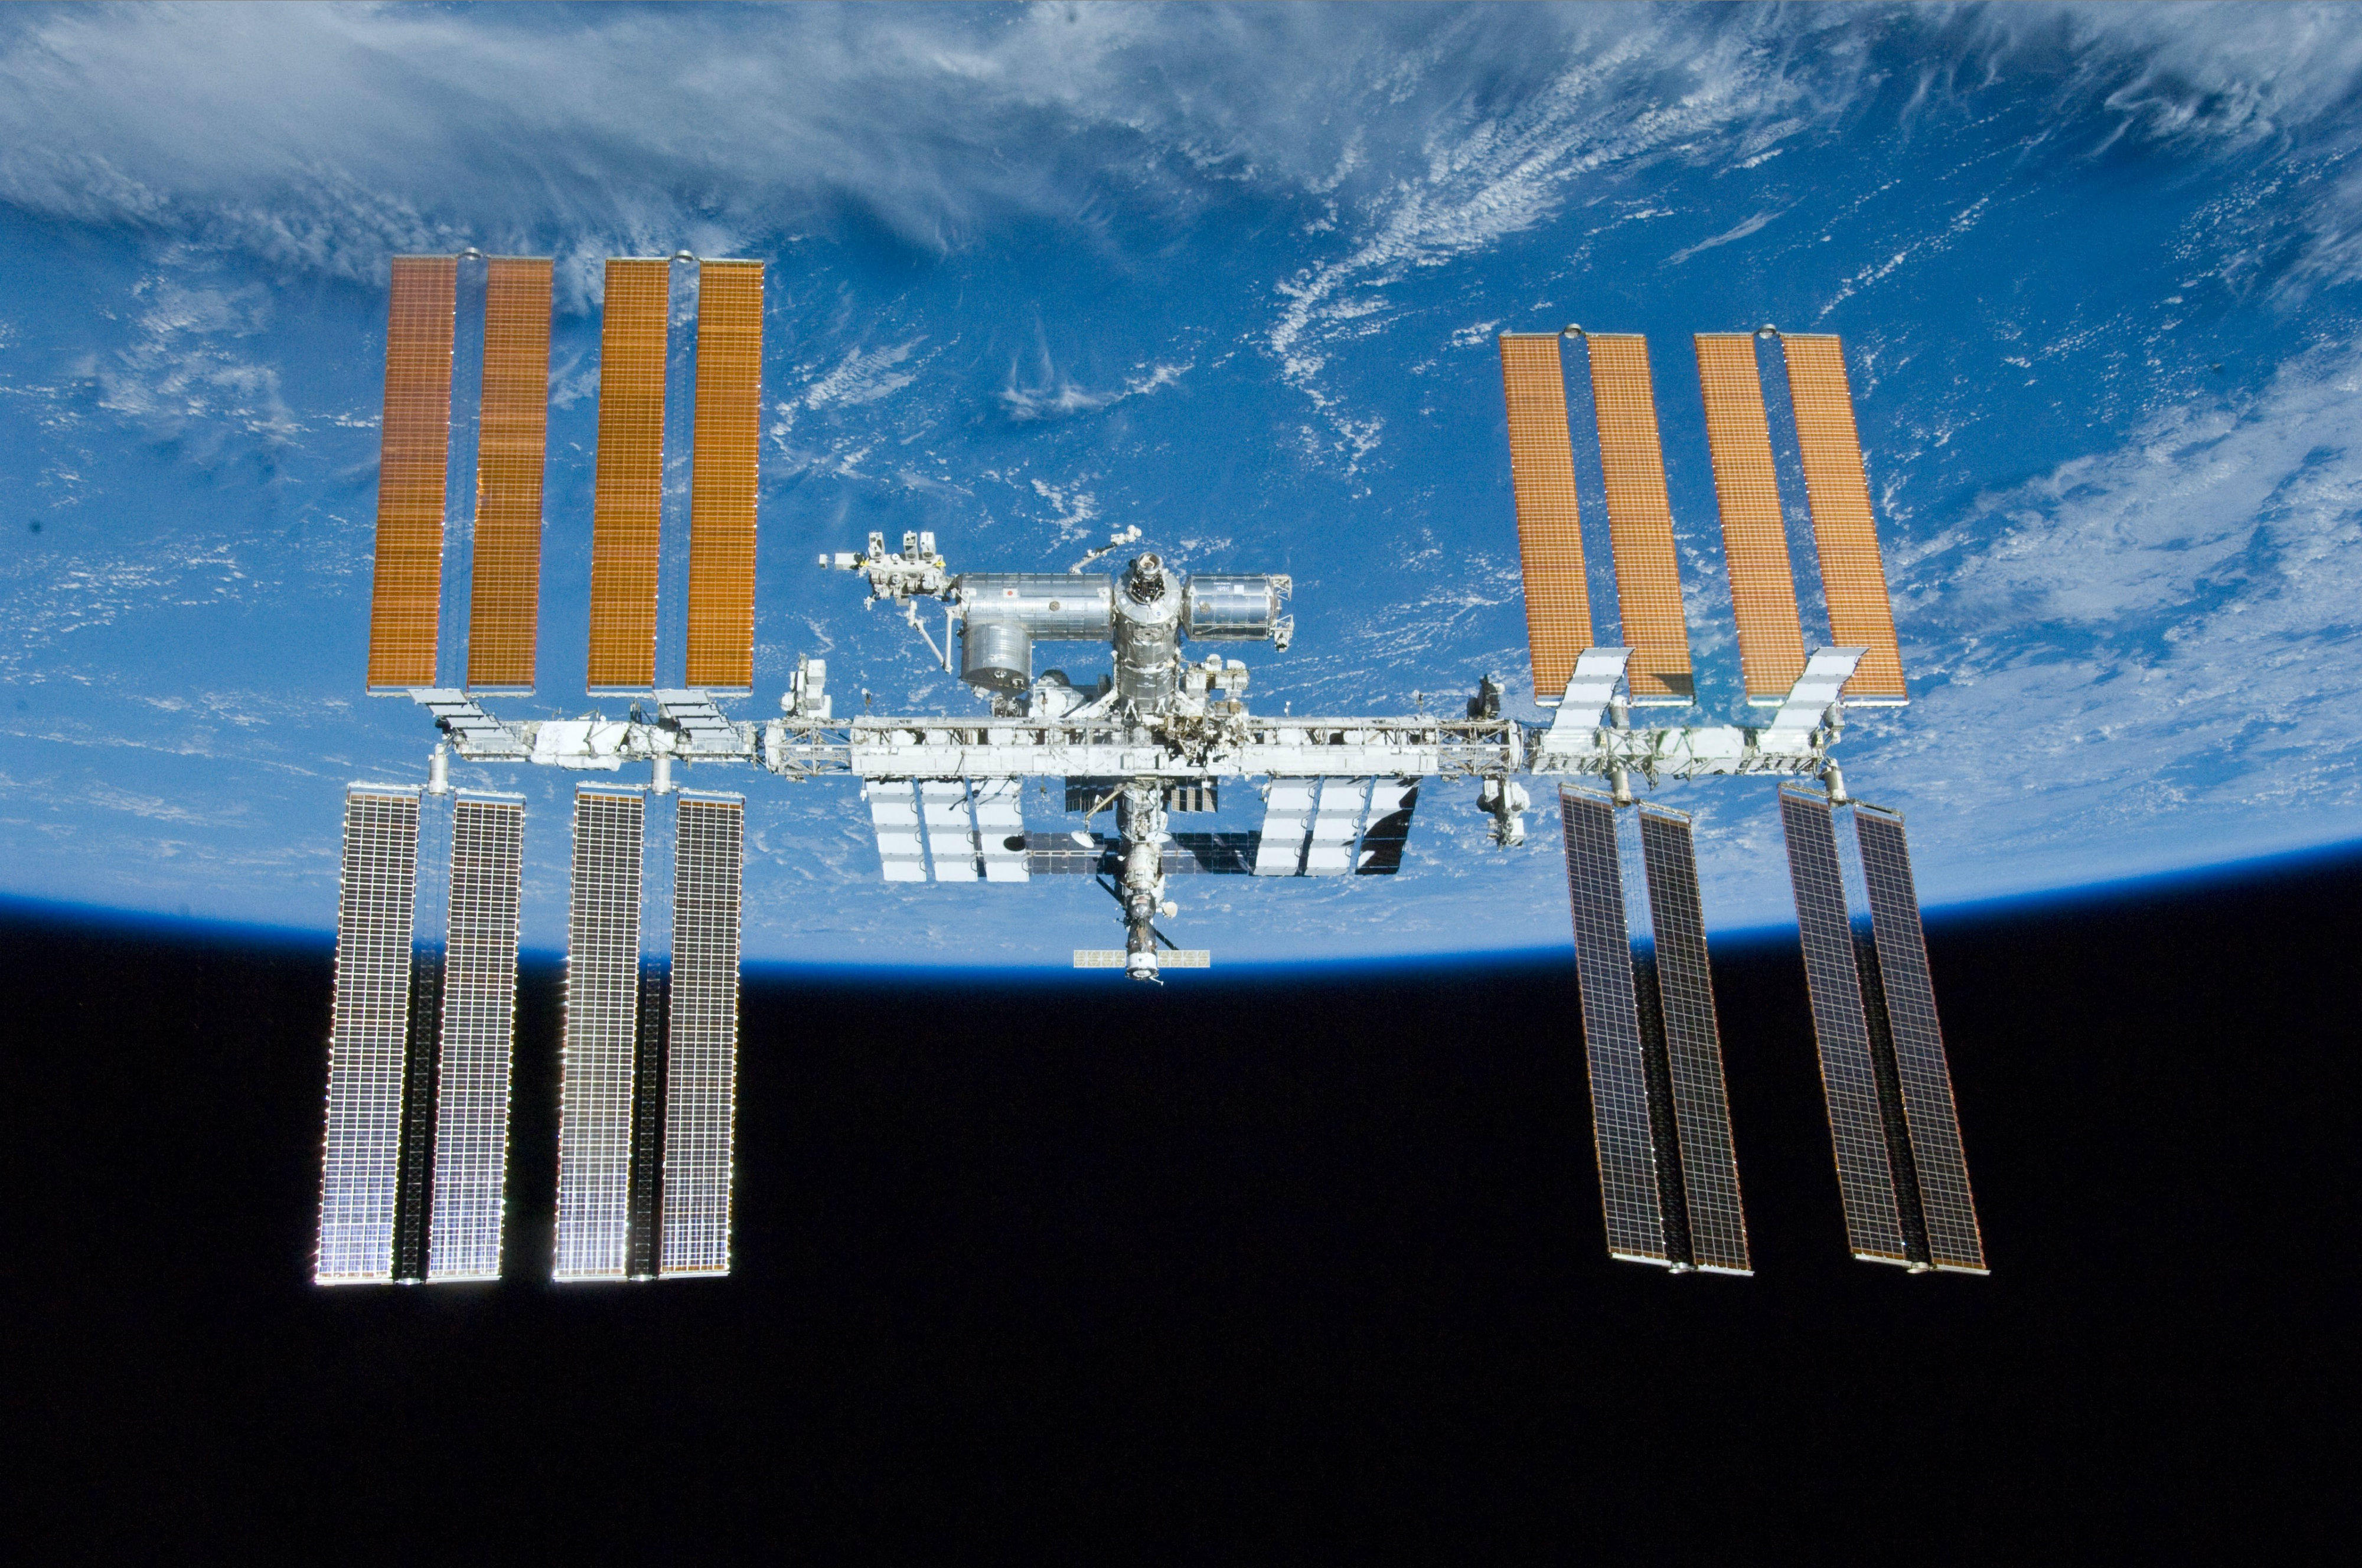 The International Space Station, with Earth in the background.